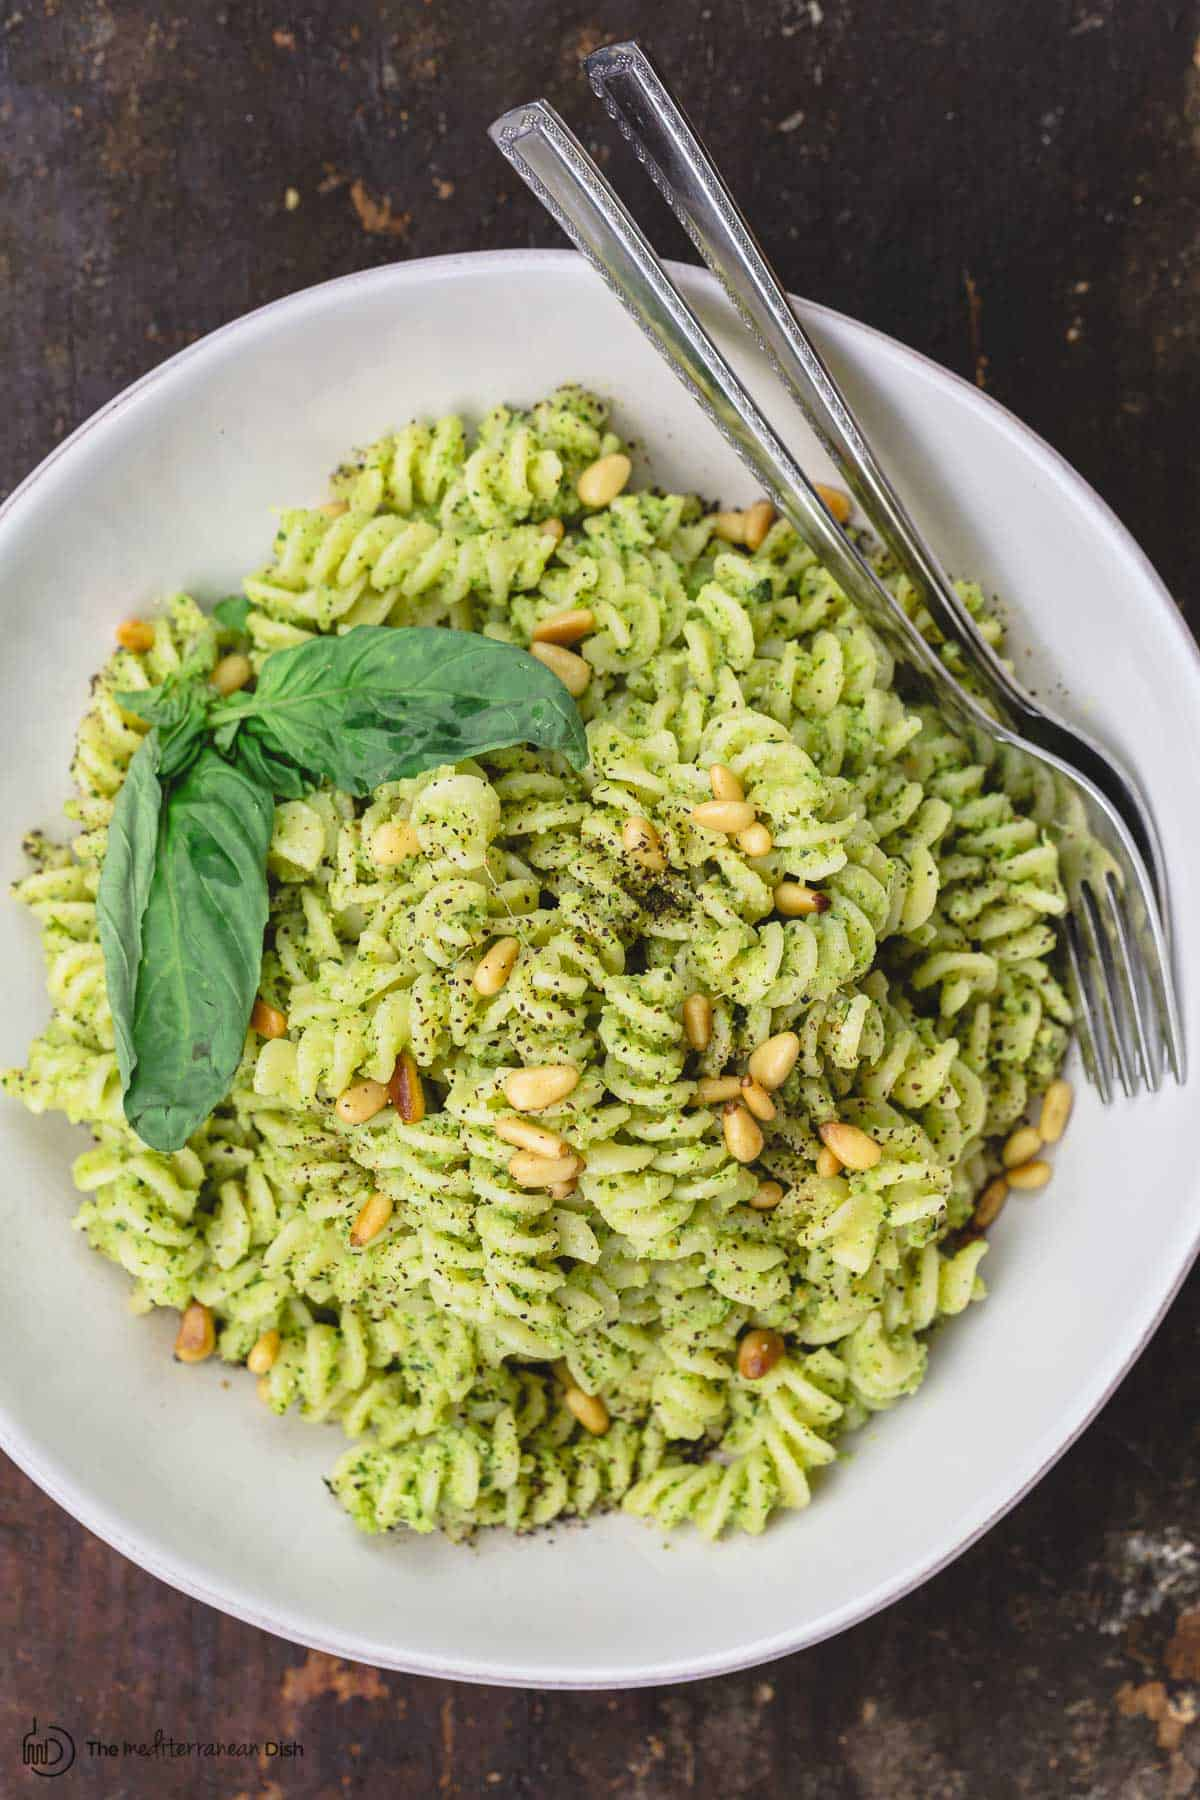 A bowl of broccoli pesto pasta with pine nuts and basil